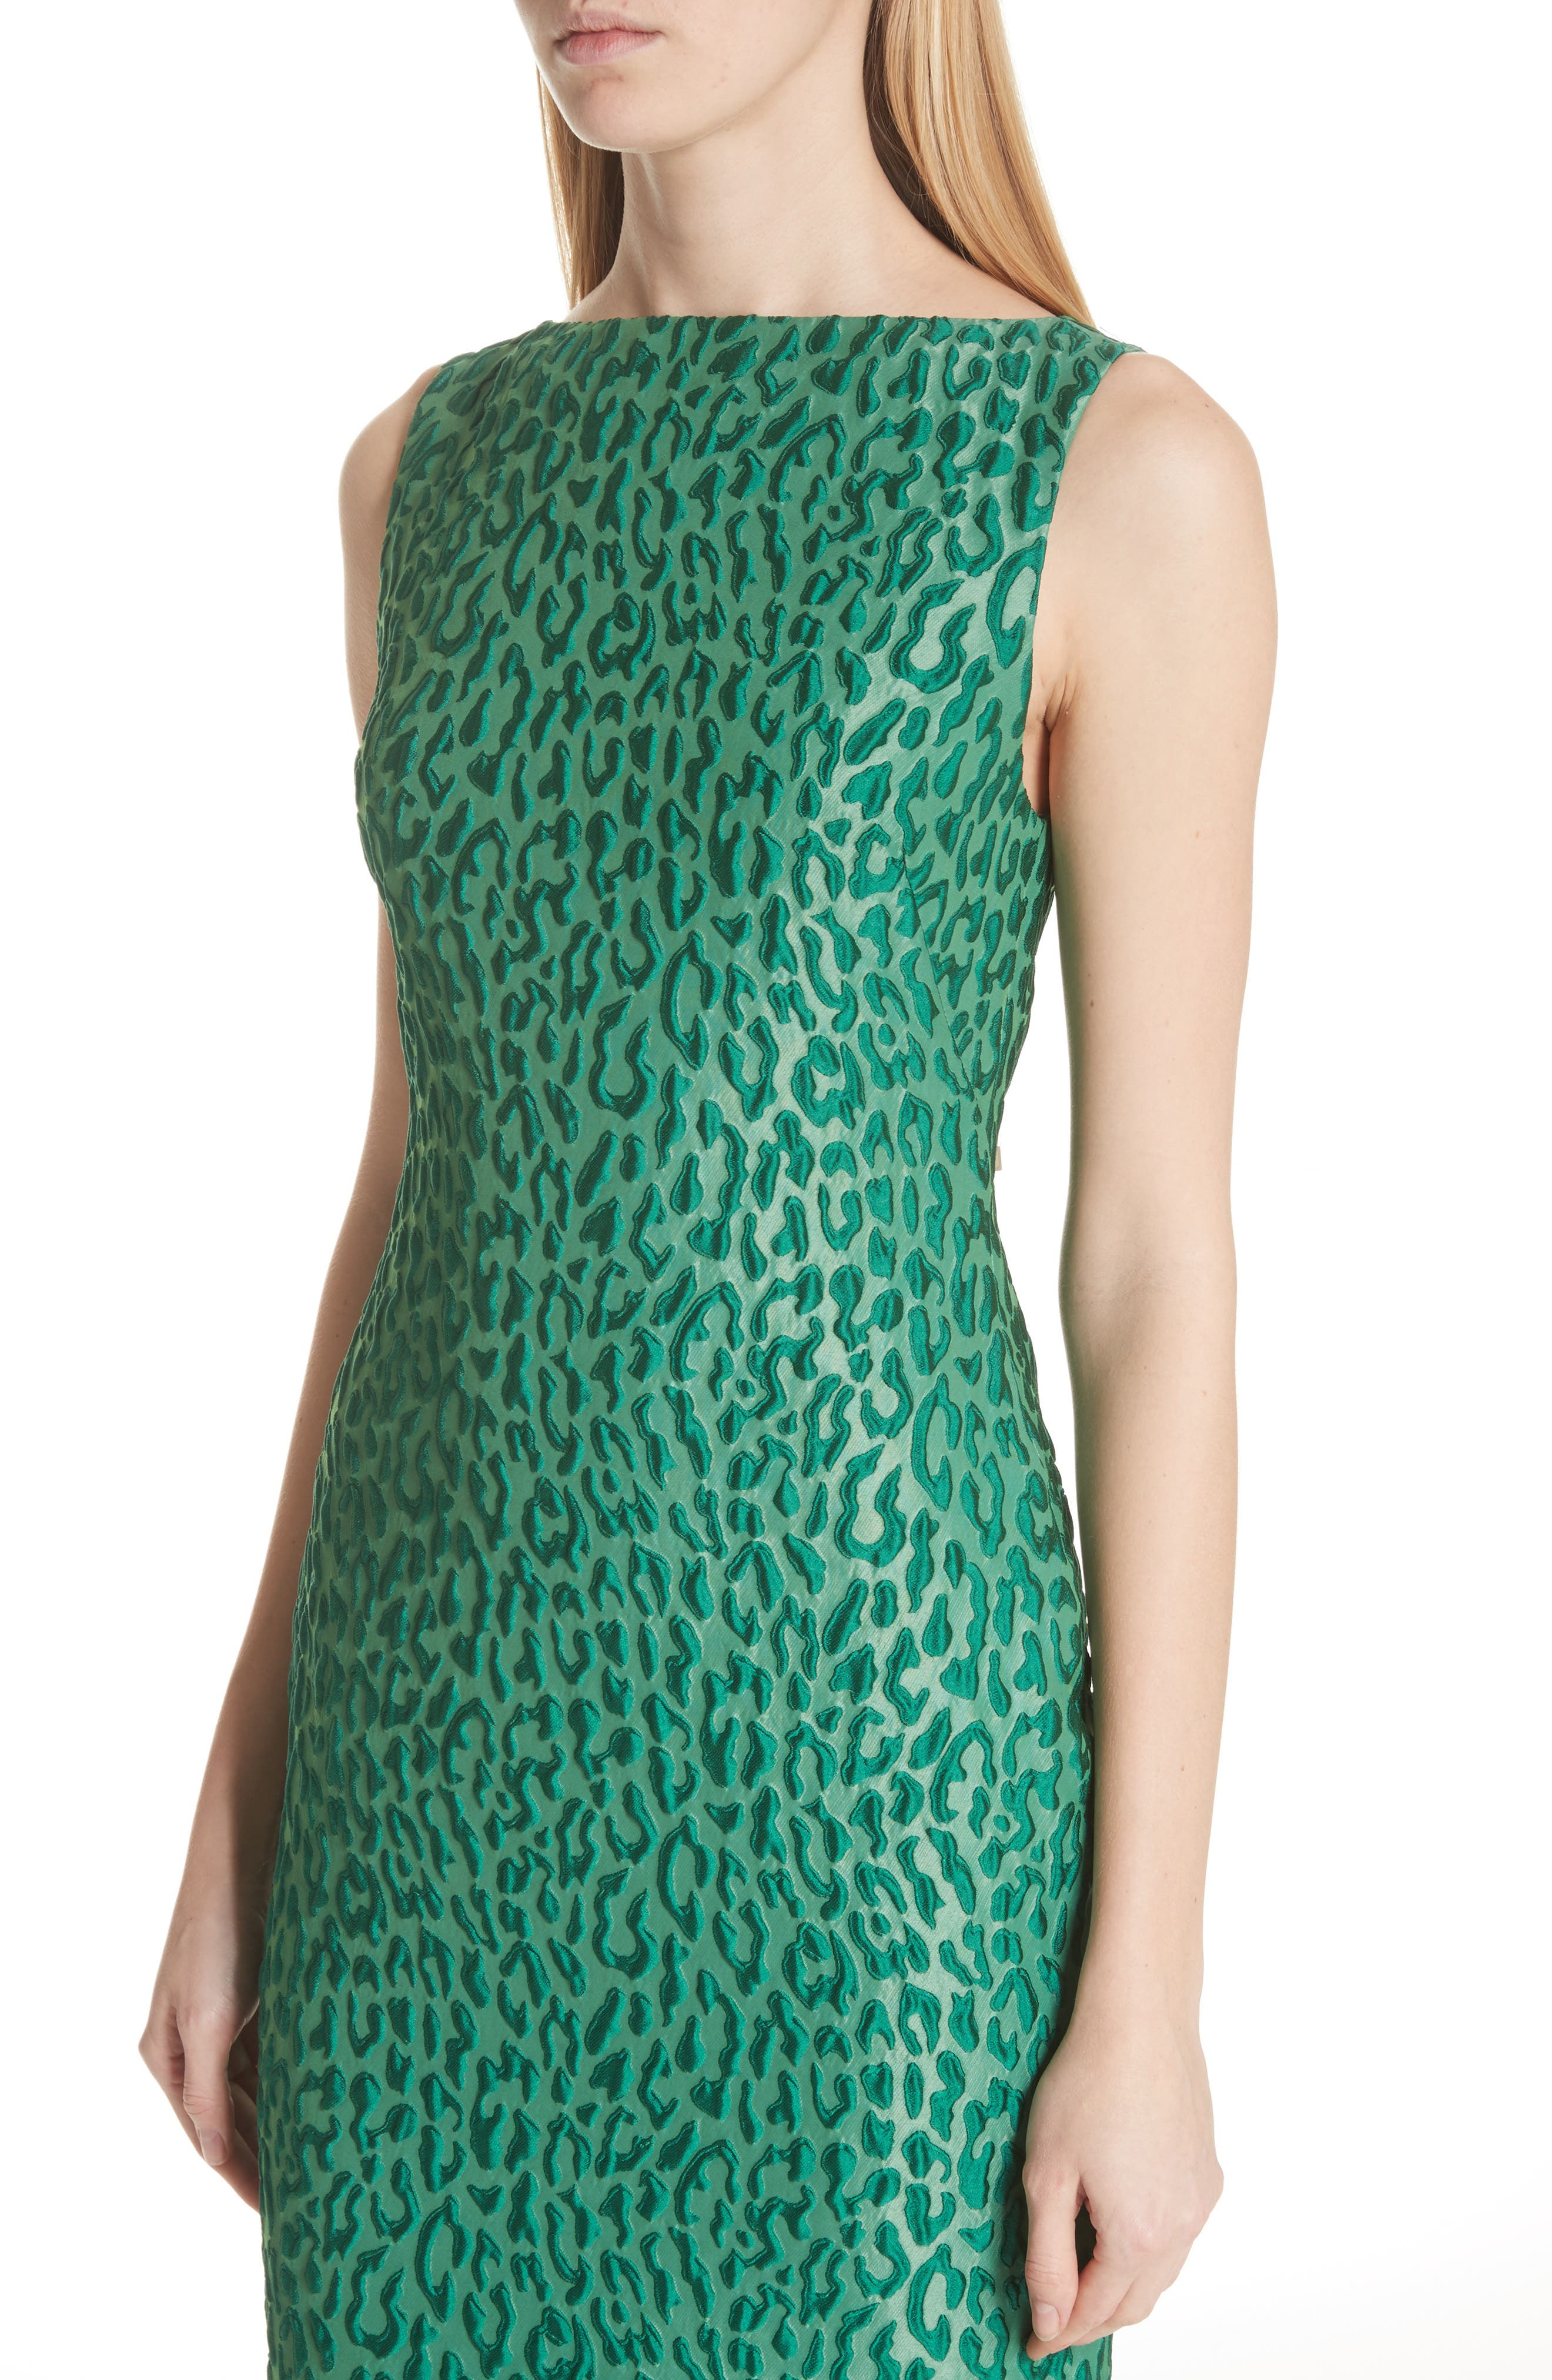 Leopard Jacquard Sheath Dress,                             Alternate thumbnail 4, color,                             Green